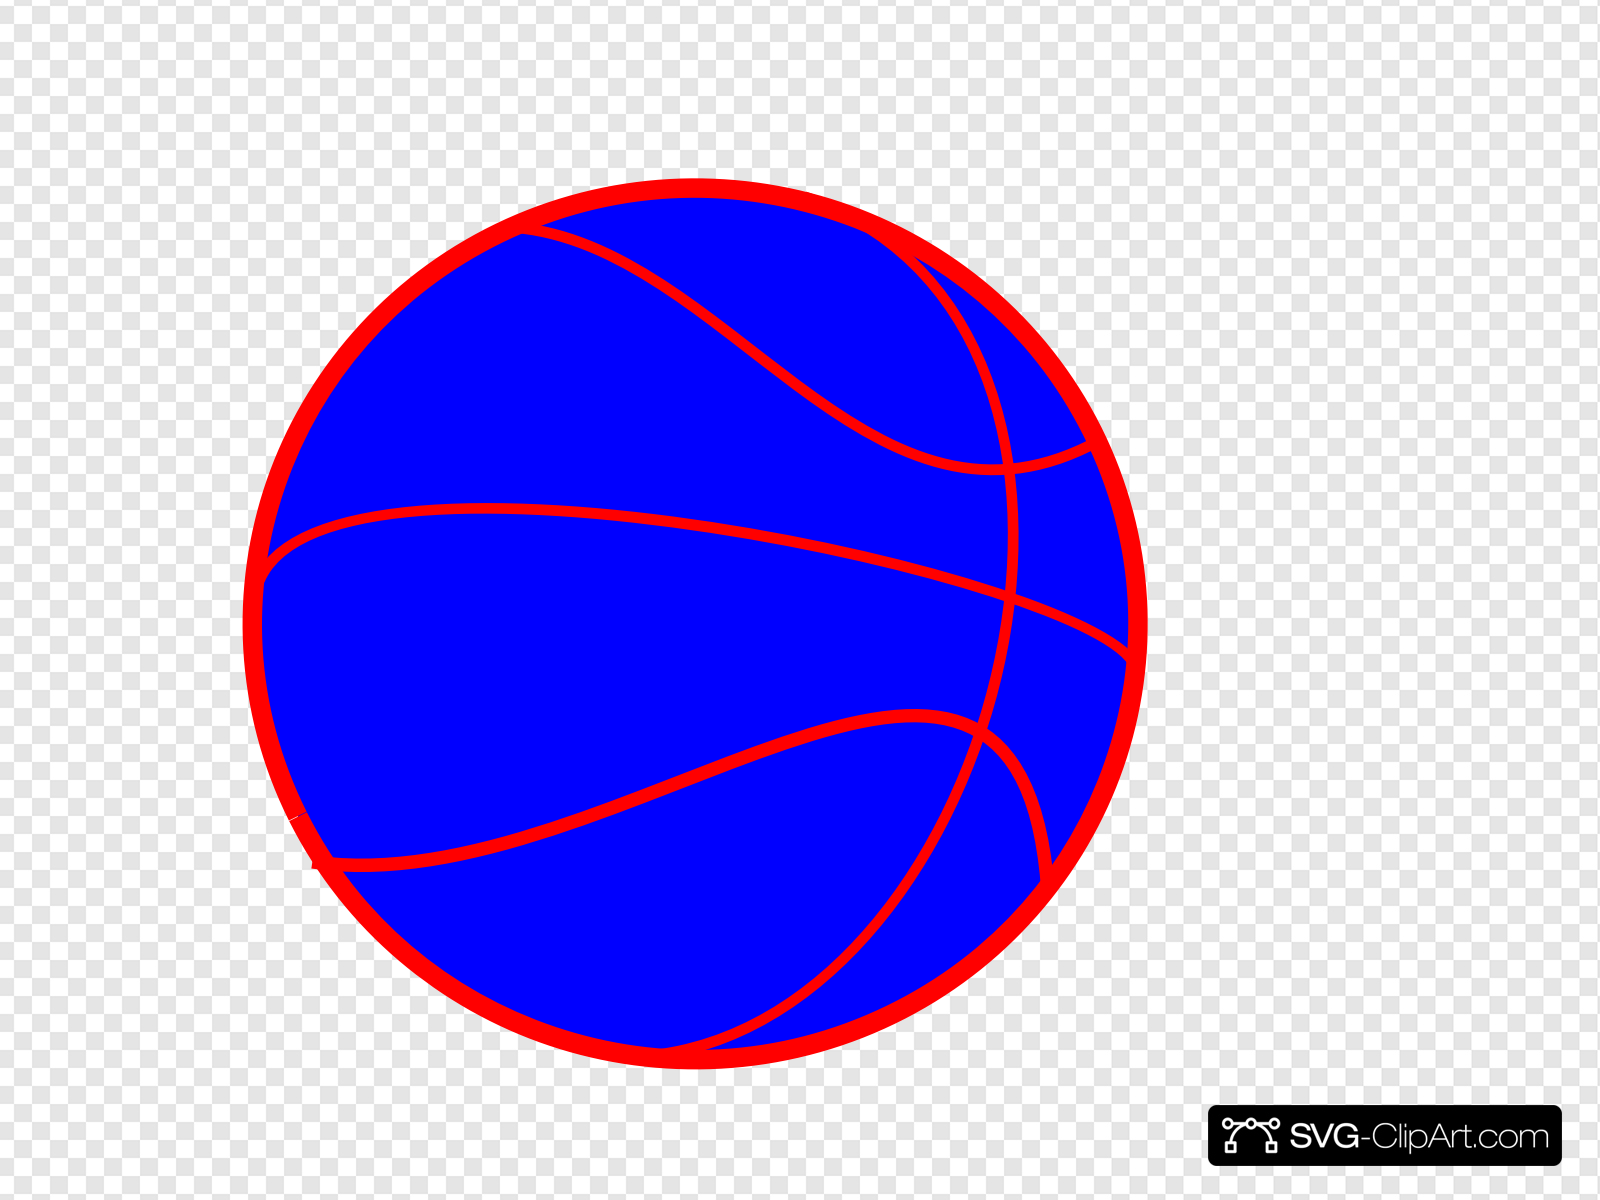 Basketball Clip art, Icon and SVG.